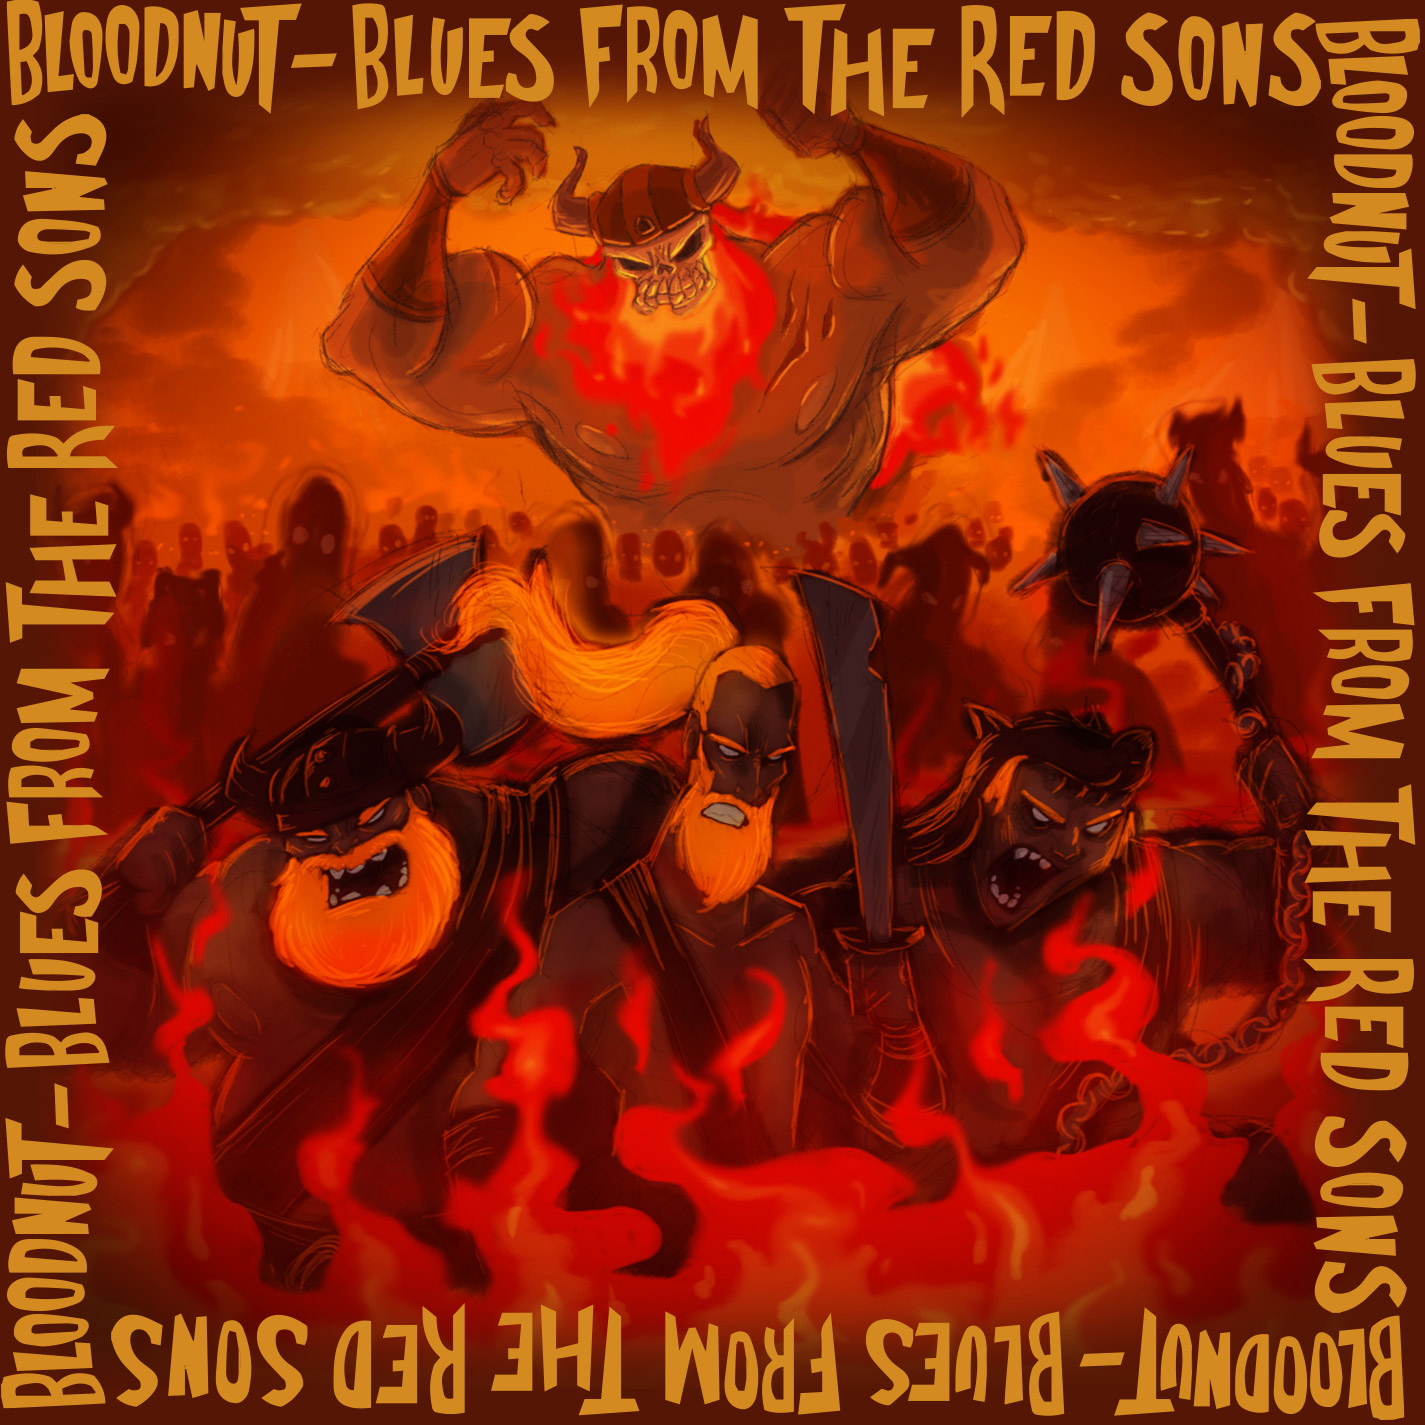 bloodnut-blues-from-the-red-sons-01b